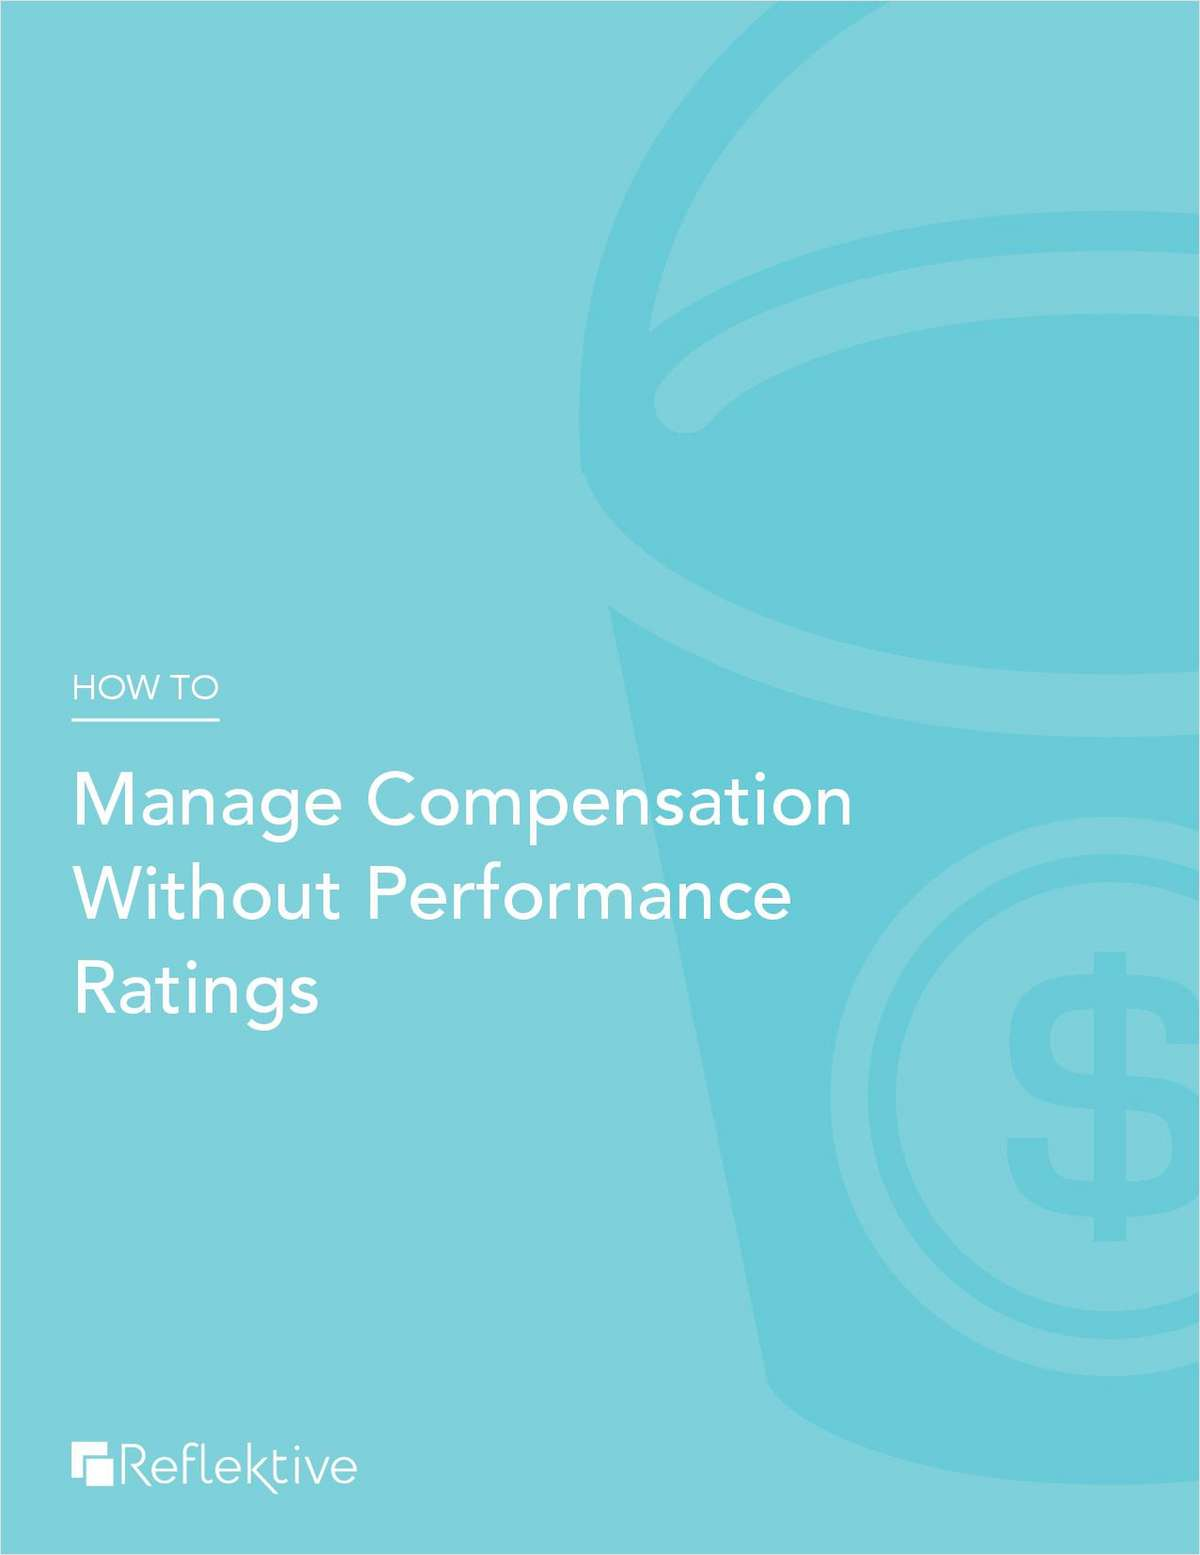 How to Manage Compensation Without Performance Ratings